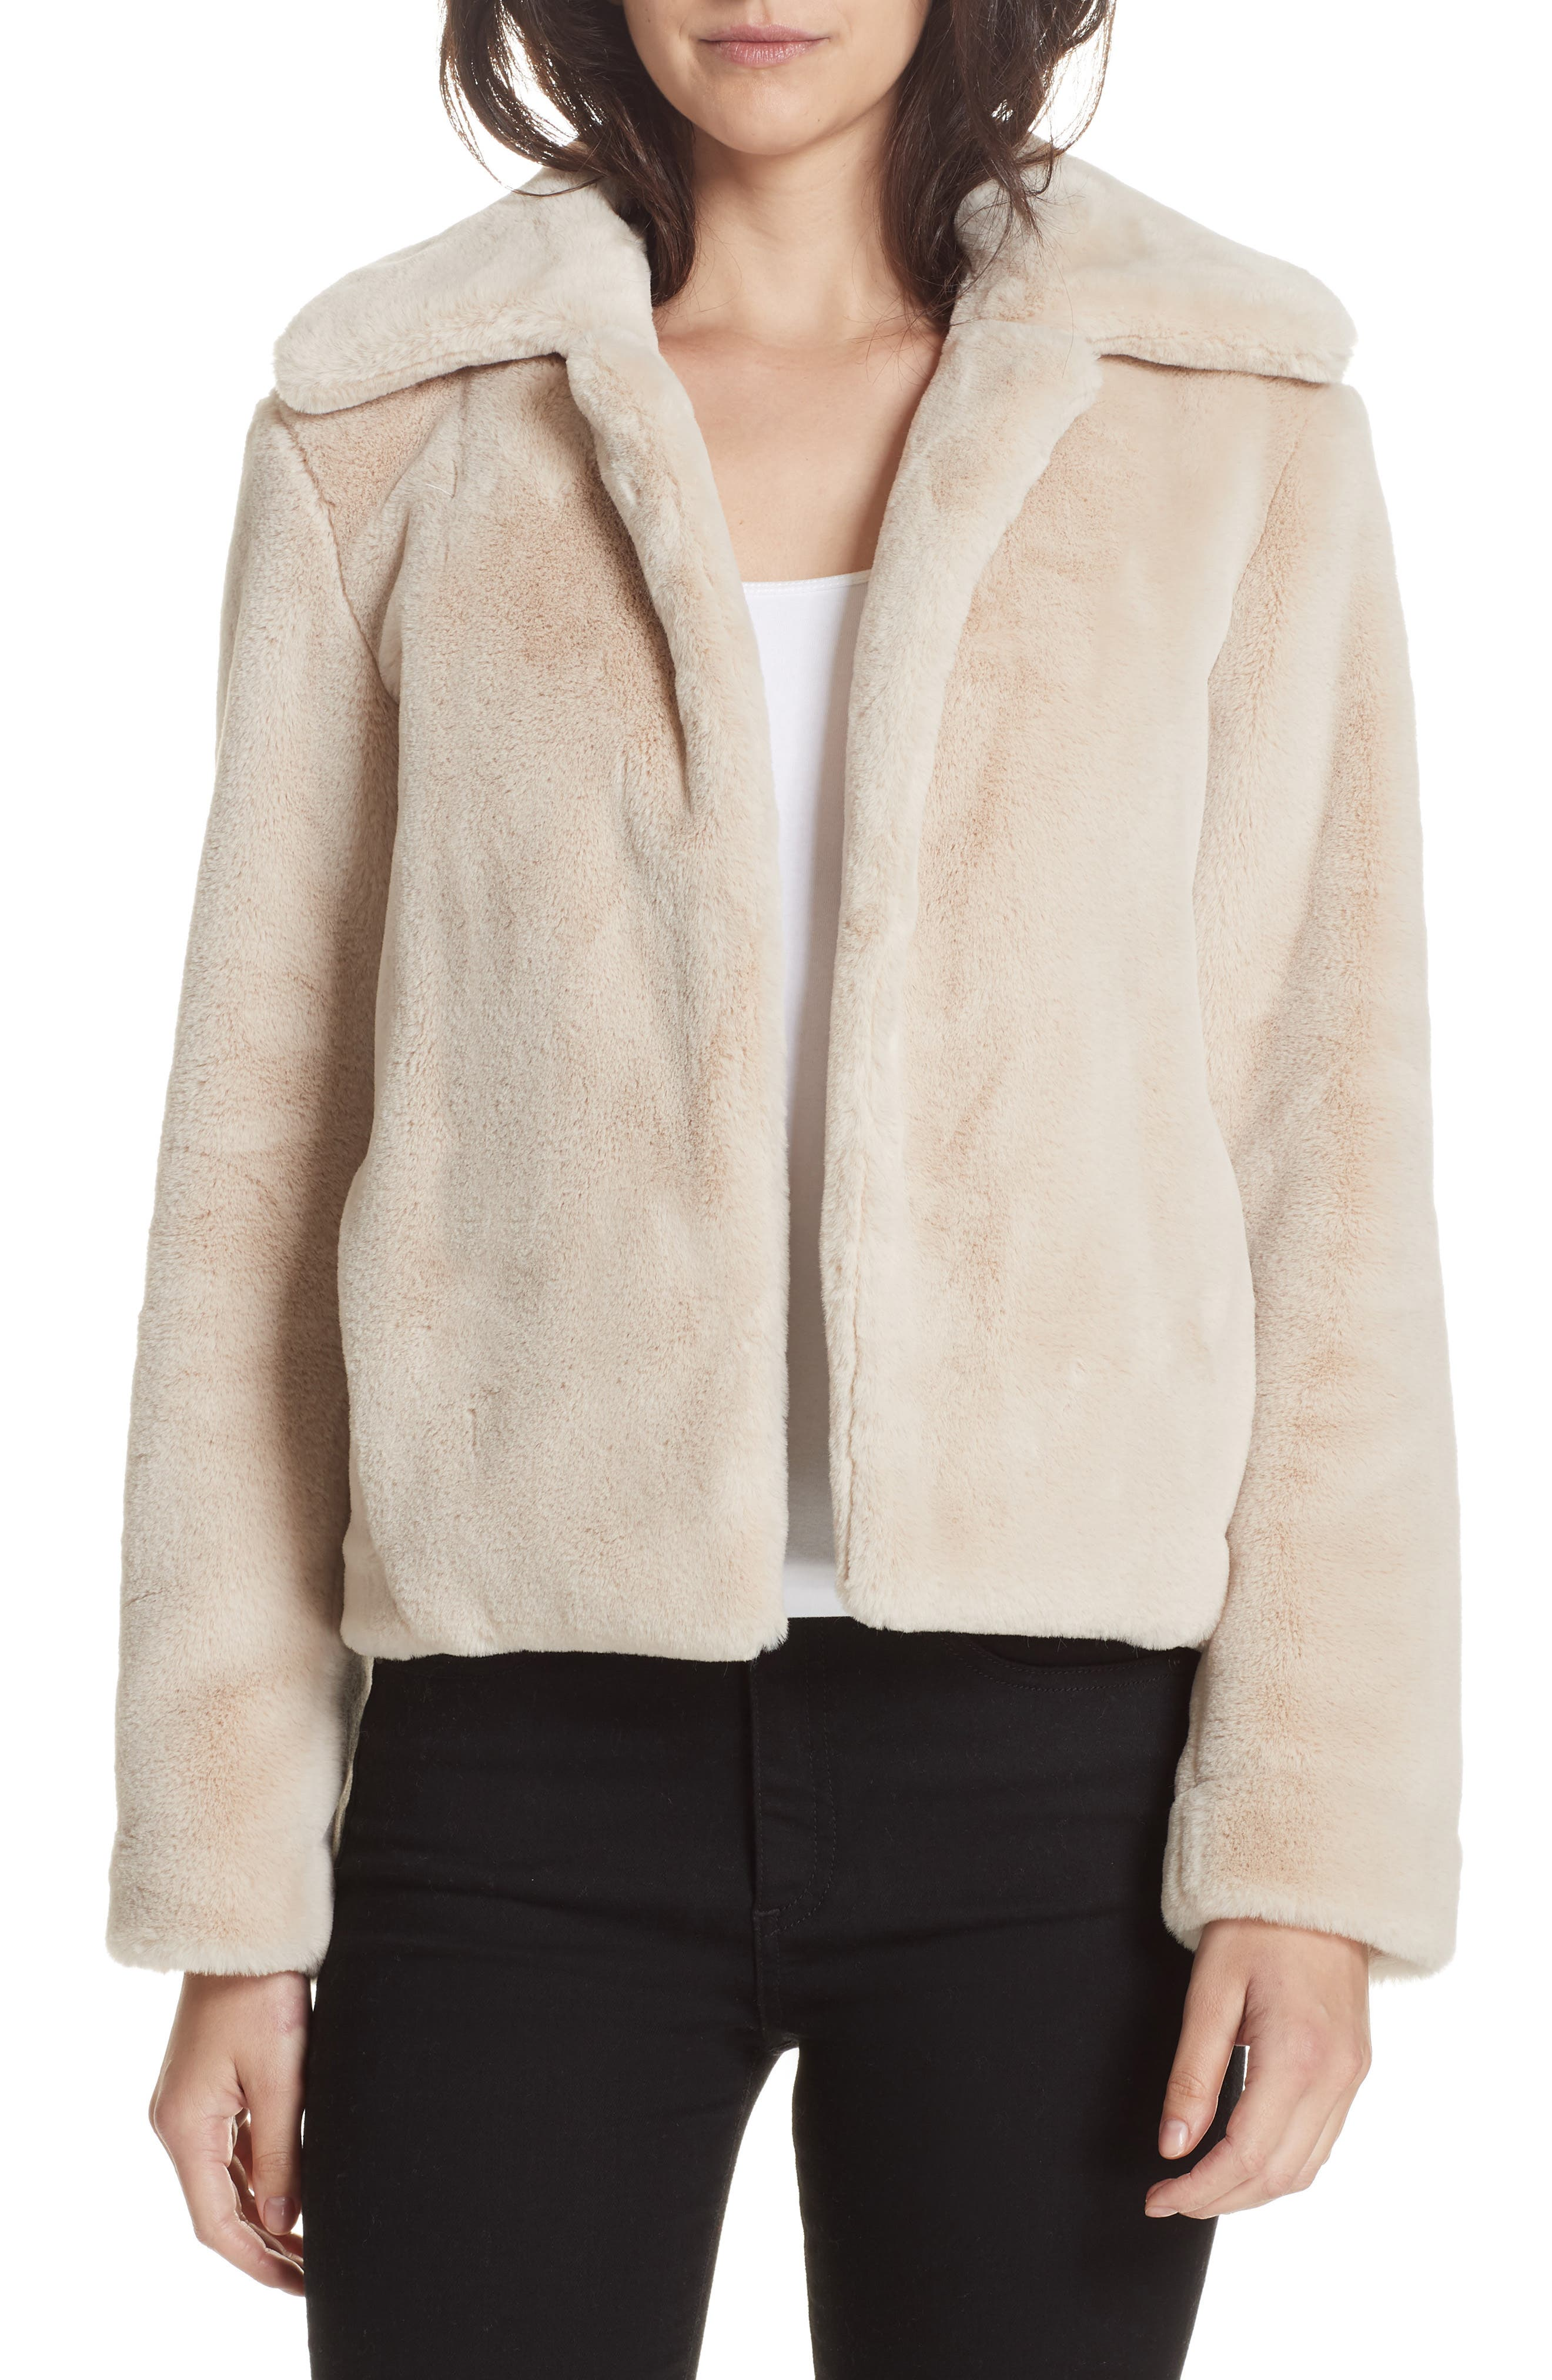 THEORY Faux Rabbit Fur Jacket, Main, color, 250